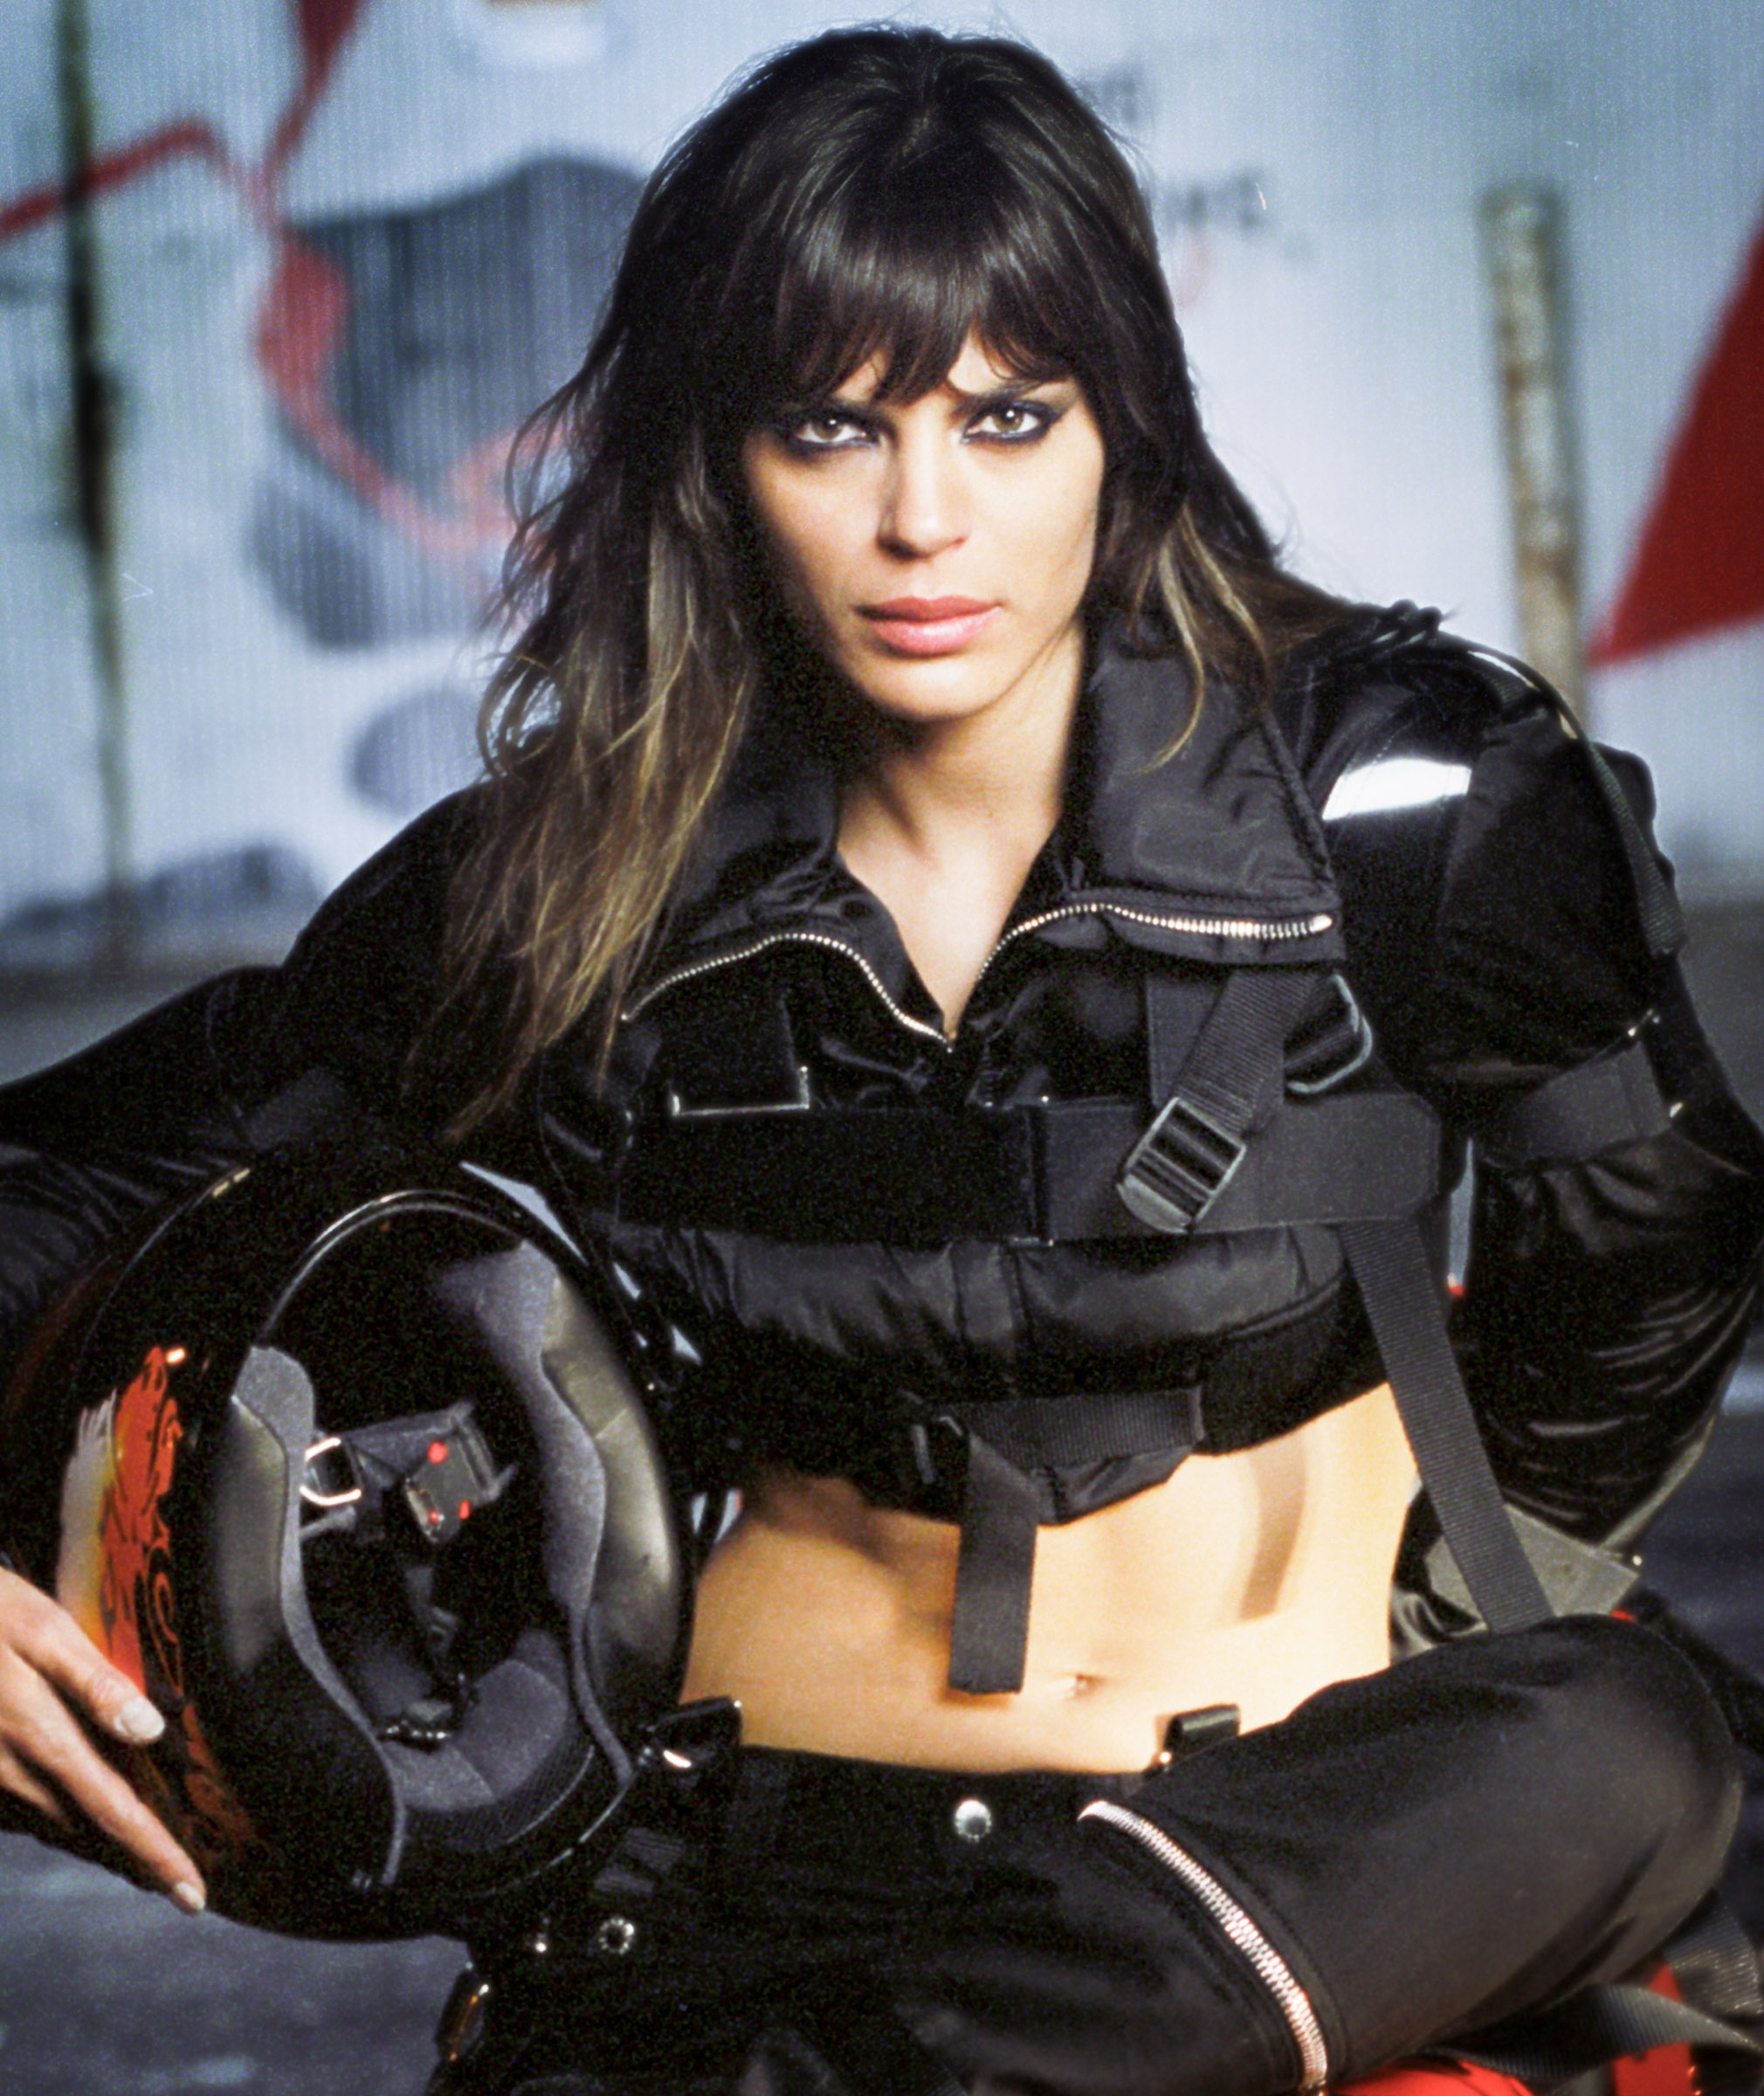 Editorial image of a model holding a motorcycle helmet during a photo shoot